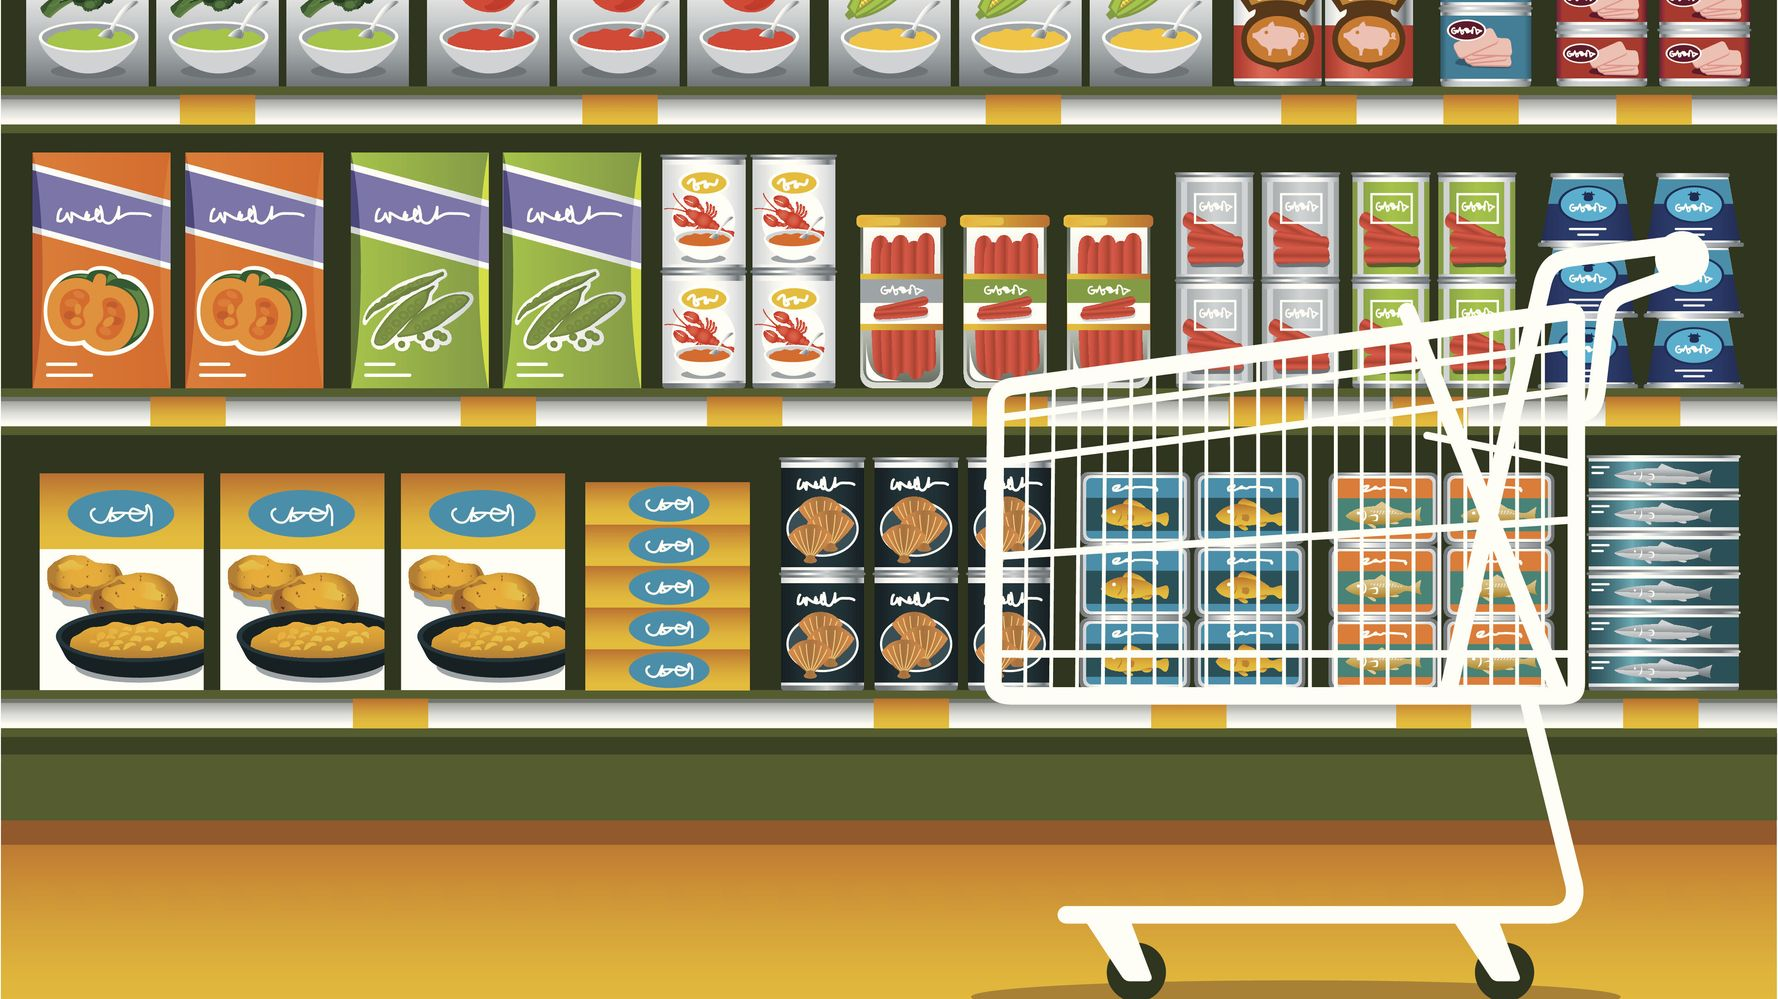 Grocery Shopping For A Quarantine: What To Buy And How Much photo